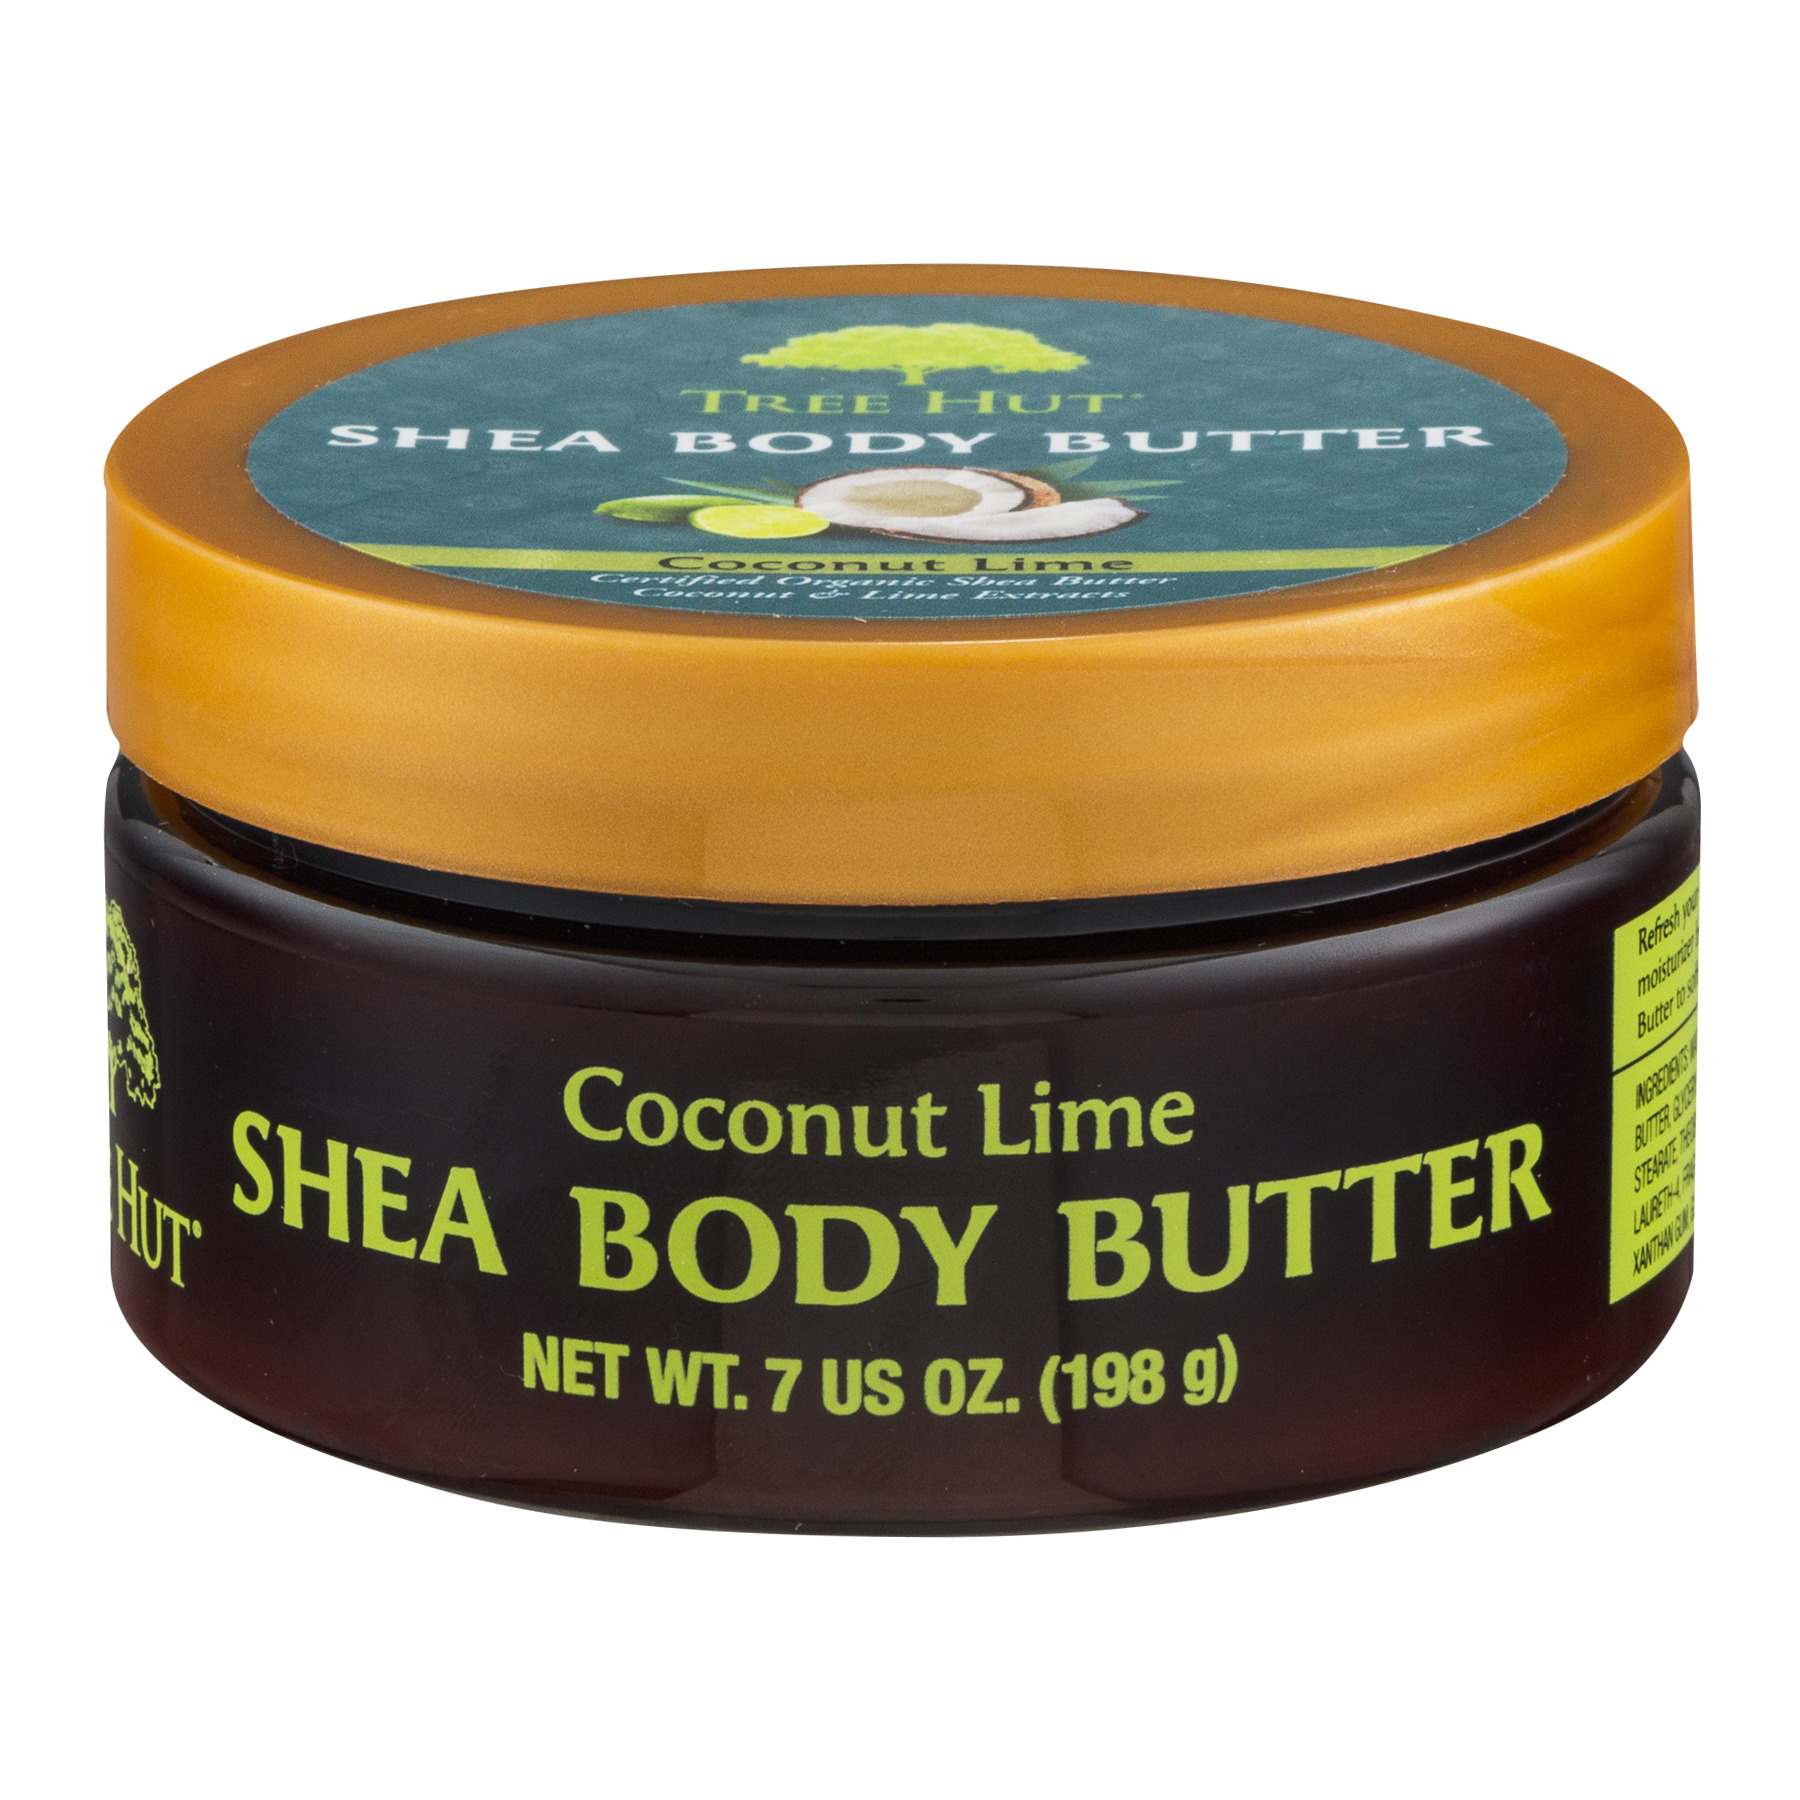 Tree Hut Shea Body Butter Coconut Lime, 7.0 OZ